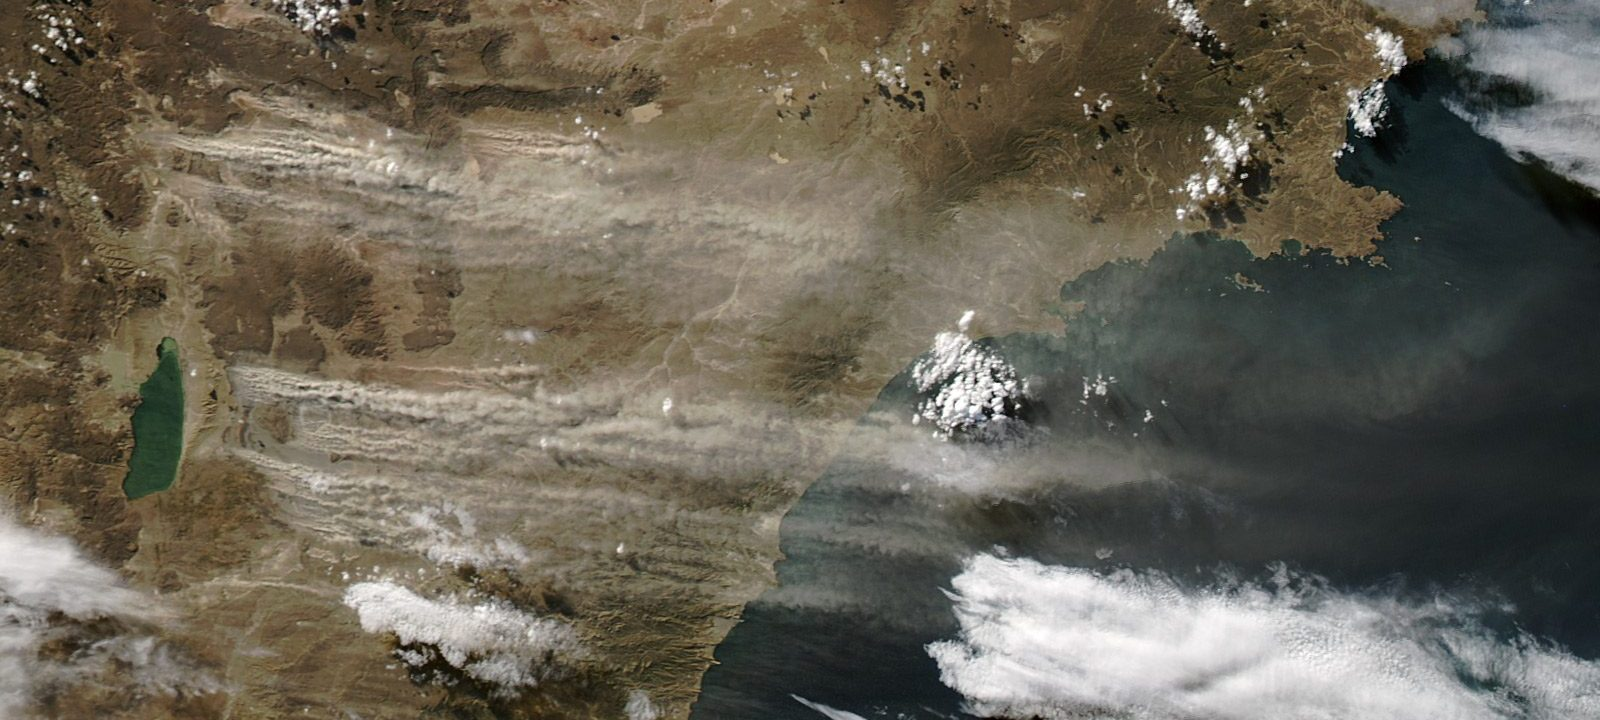 Dust plumes off Argentina. Lago Colhue-Huapi at center left. Aqua MODIS image, 2013. NASA.